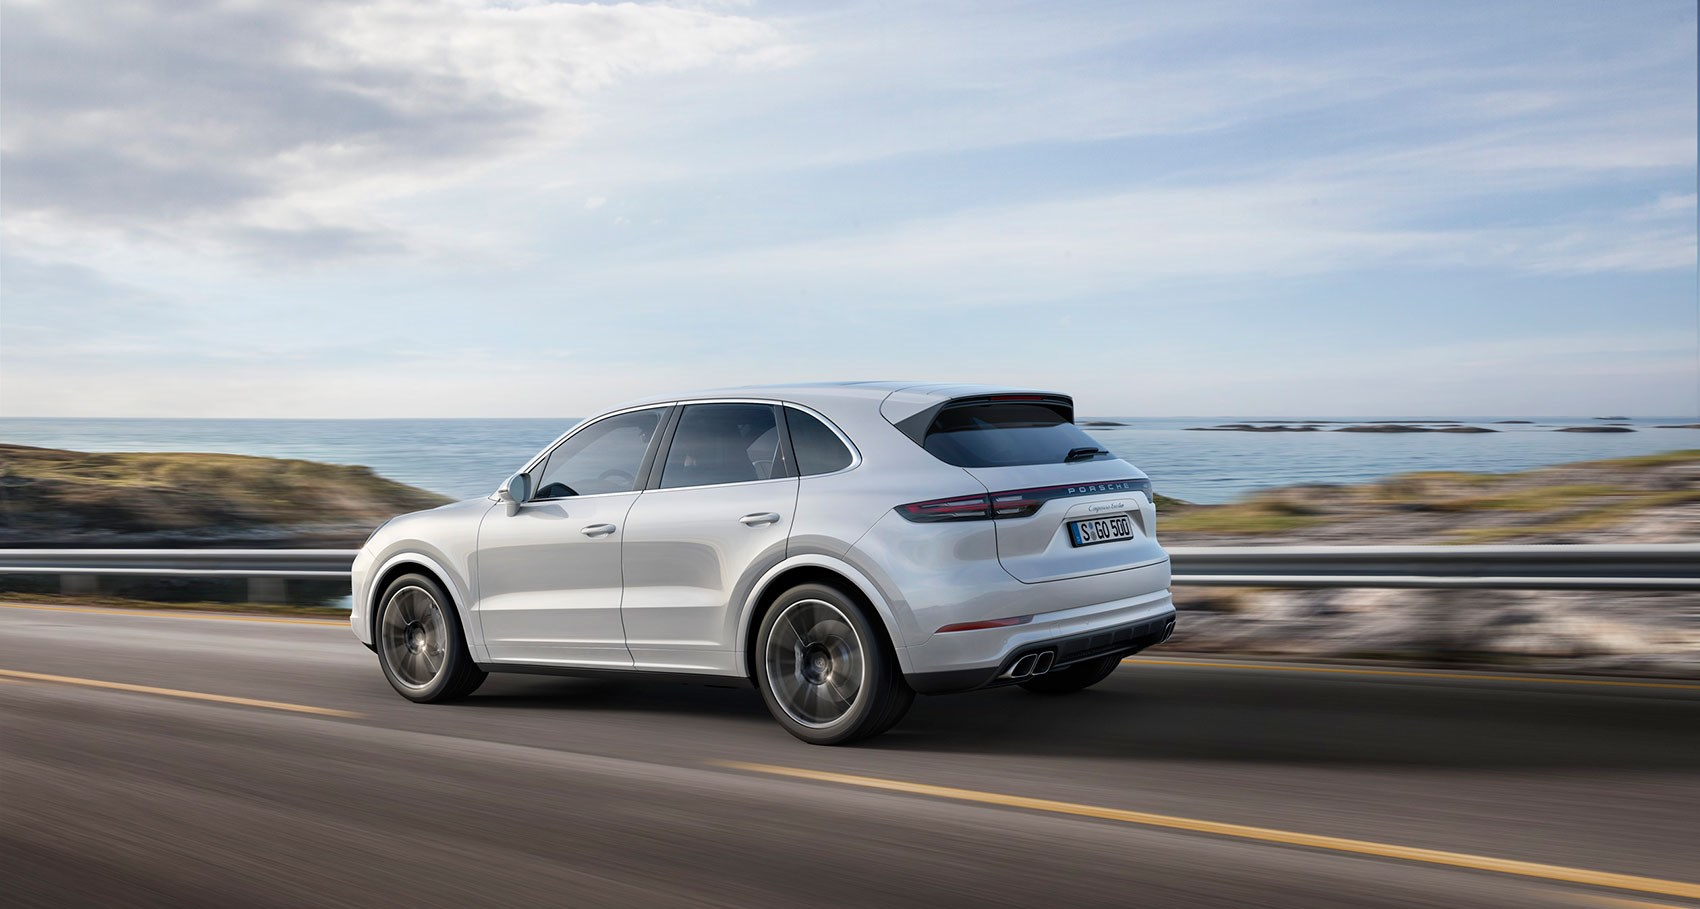 new porsche cayenne turbo unveiled for 2018 car magazine. Black Bedroom Furniture Sets. Home Design Ideas